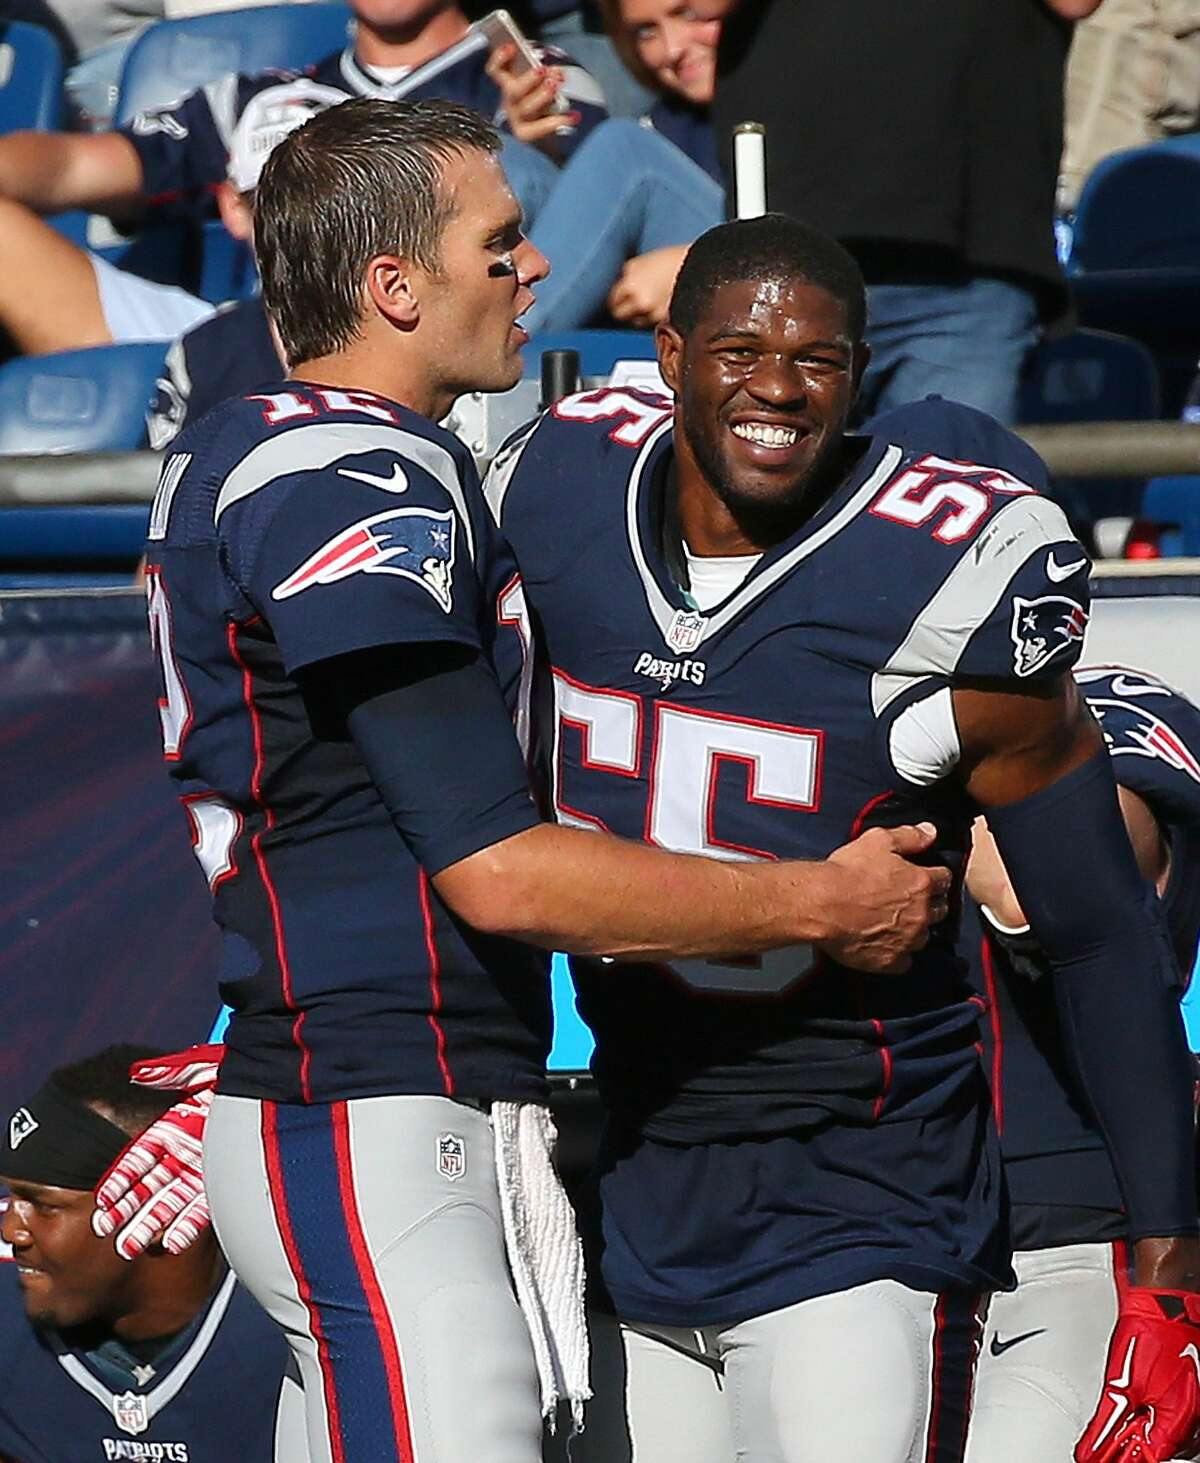 FOXBORO, MA - SEPTEMBER 27: Tom Brady #12 of the New England Patriots celebrates with Jonathan Freeny #55 of the New England Patriots at the end of a game against the Jacksonville Jaguars at Gillette Stadium on September 27, 2015 in Foxboro, Massachusetts. (Photo by Jim Rogash/Getty Images)